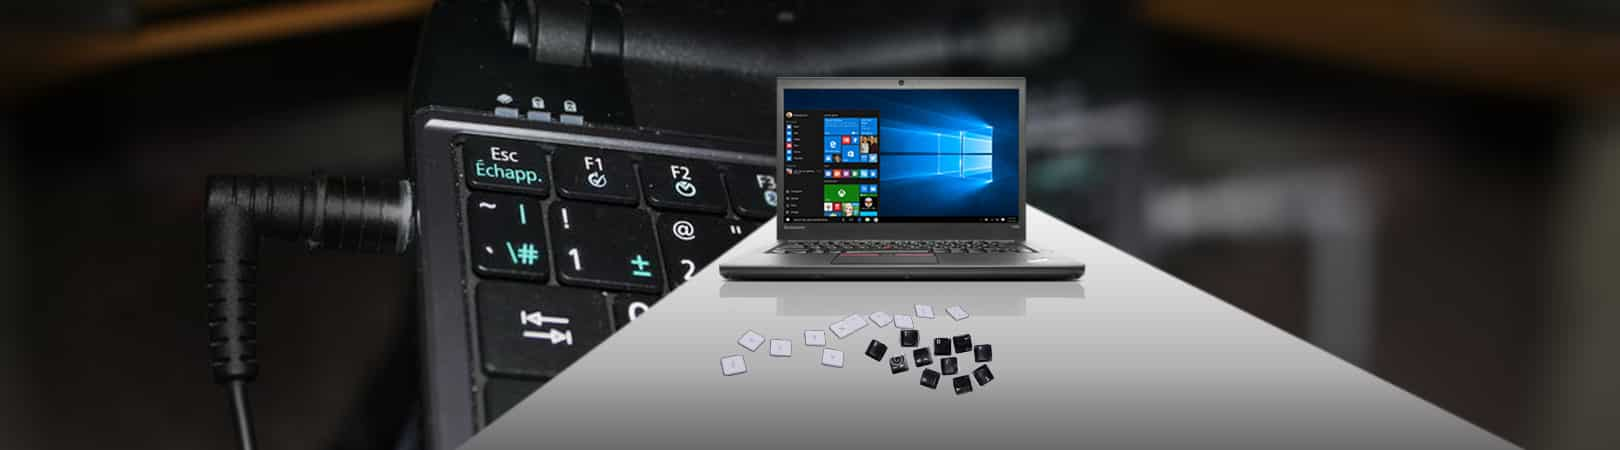 banner image - Sony Vaio Laptop Keyboard Replacement